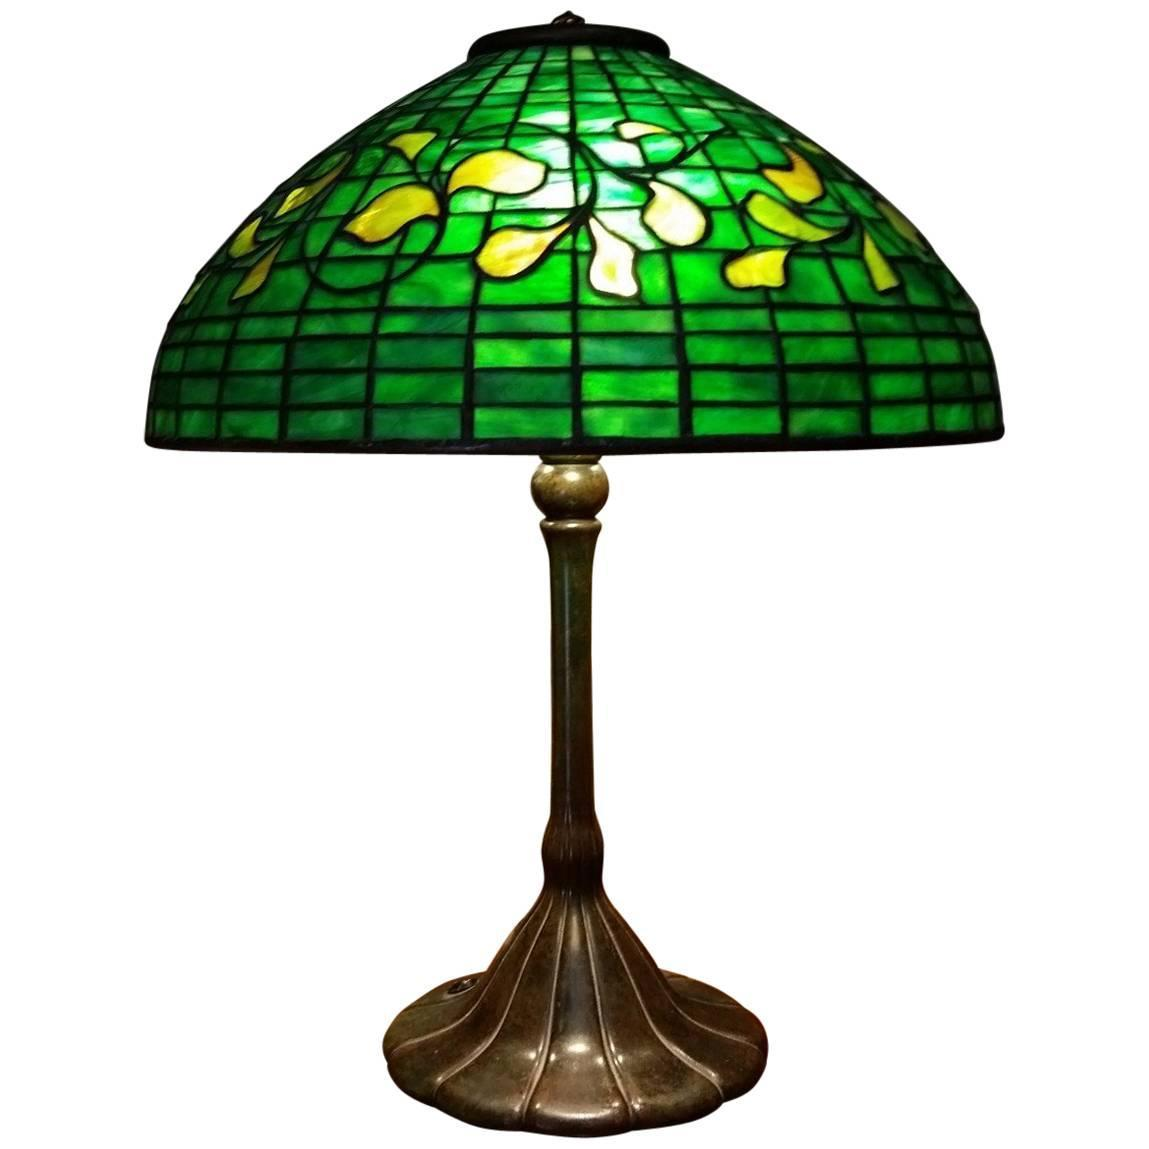 Rare Tiffany Table Lamp In Swirling Leaf Pattern